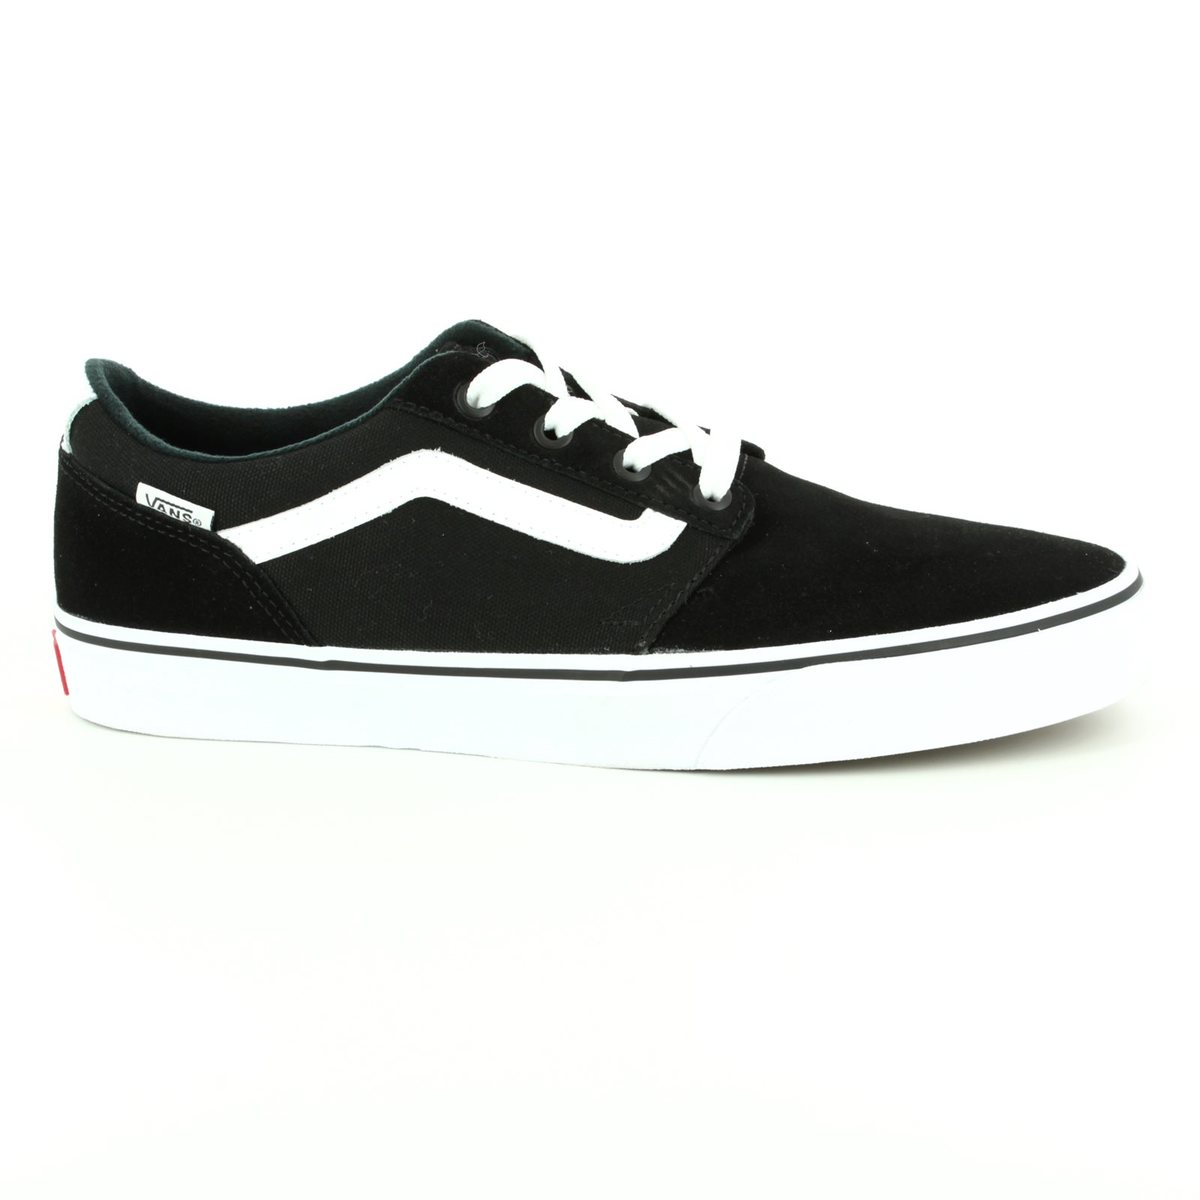 reputable site 0fca7 df6b7 Nike  Vans Trainers - Black - VA38CBC4R 30 CHAPMAN STRIPE ...